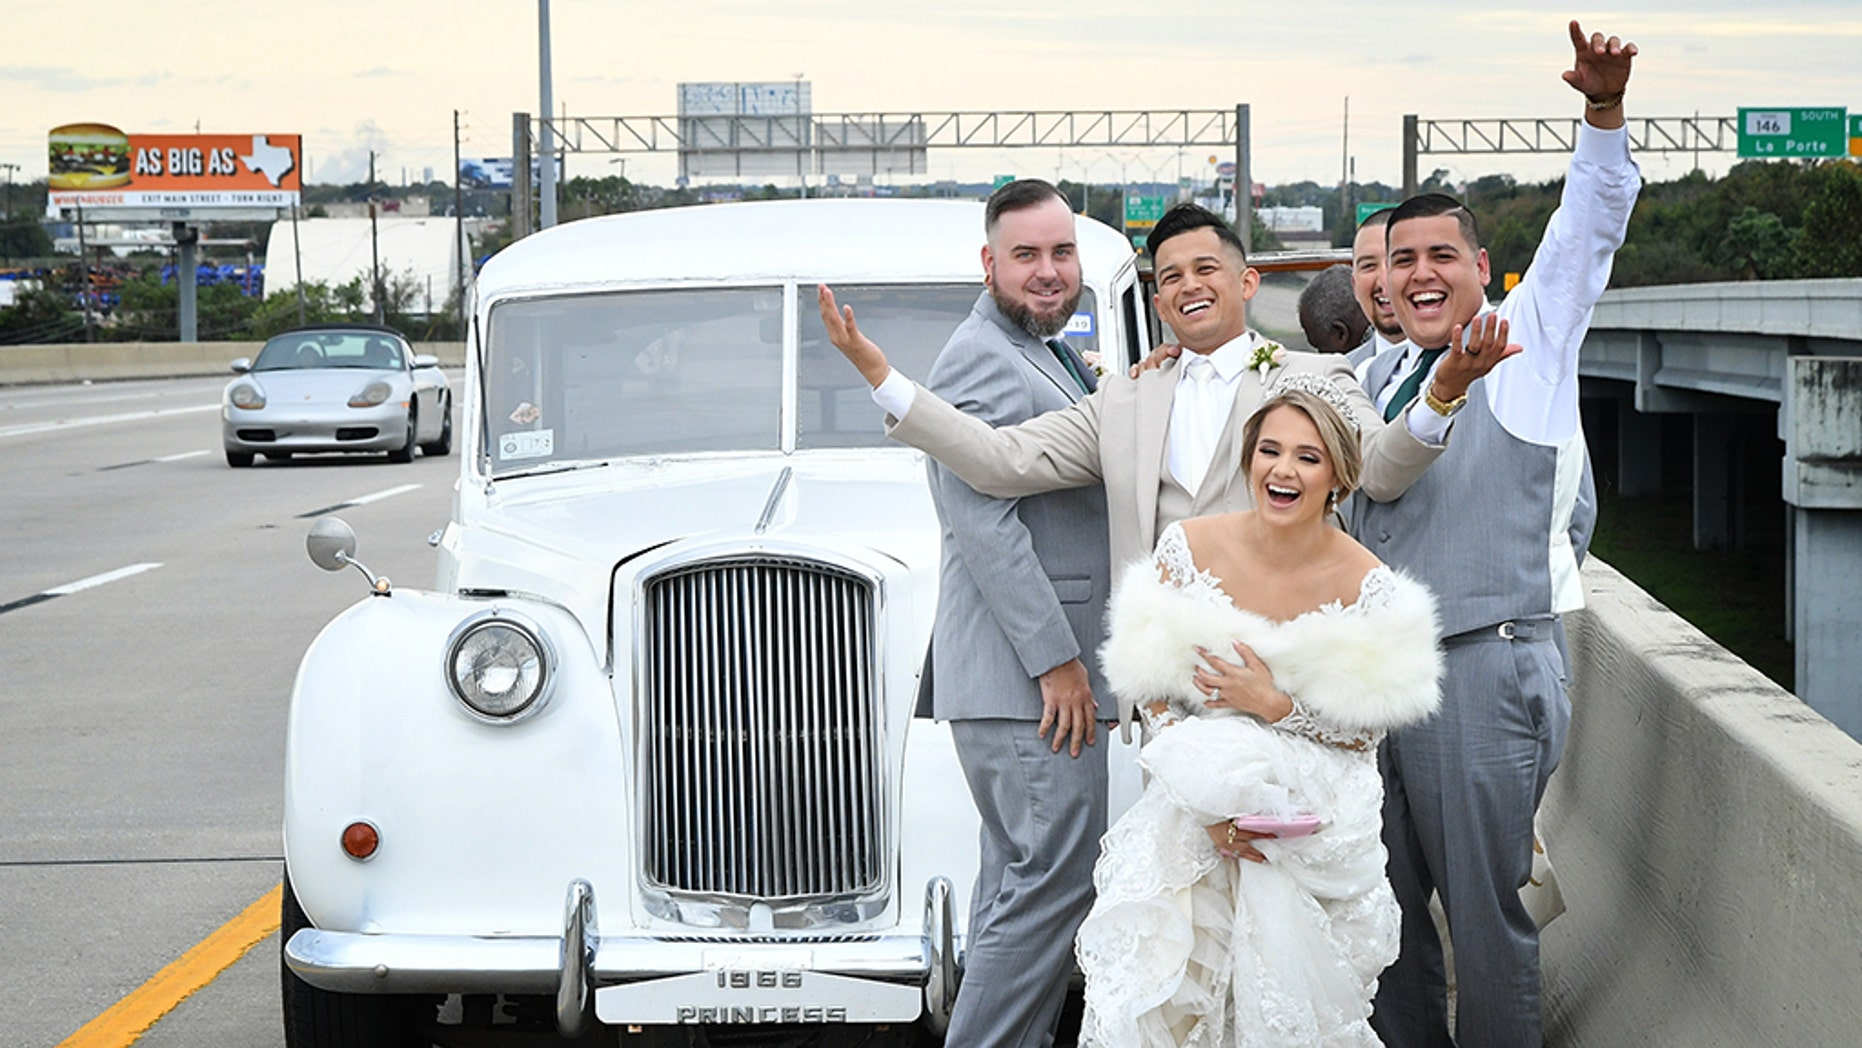 A newlywed couple's car broke down on their way to the reception and they ended up with this funny picture to remember the moment.